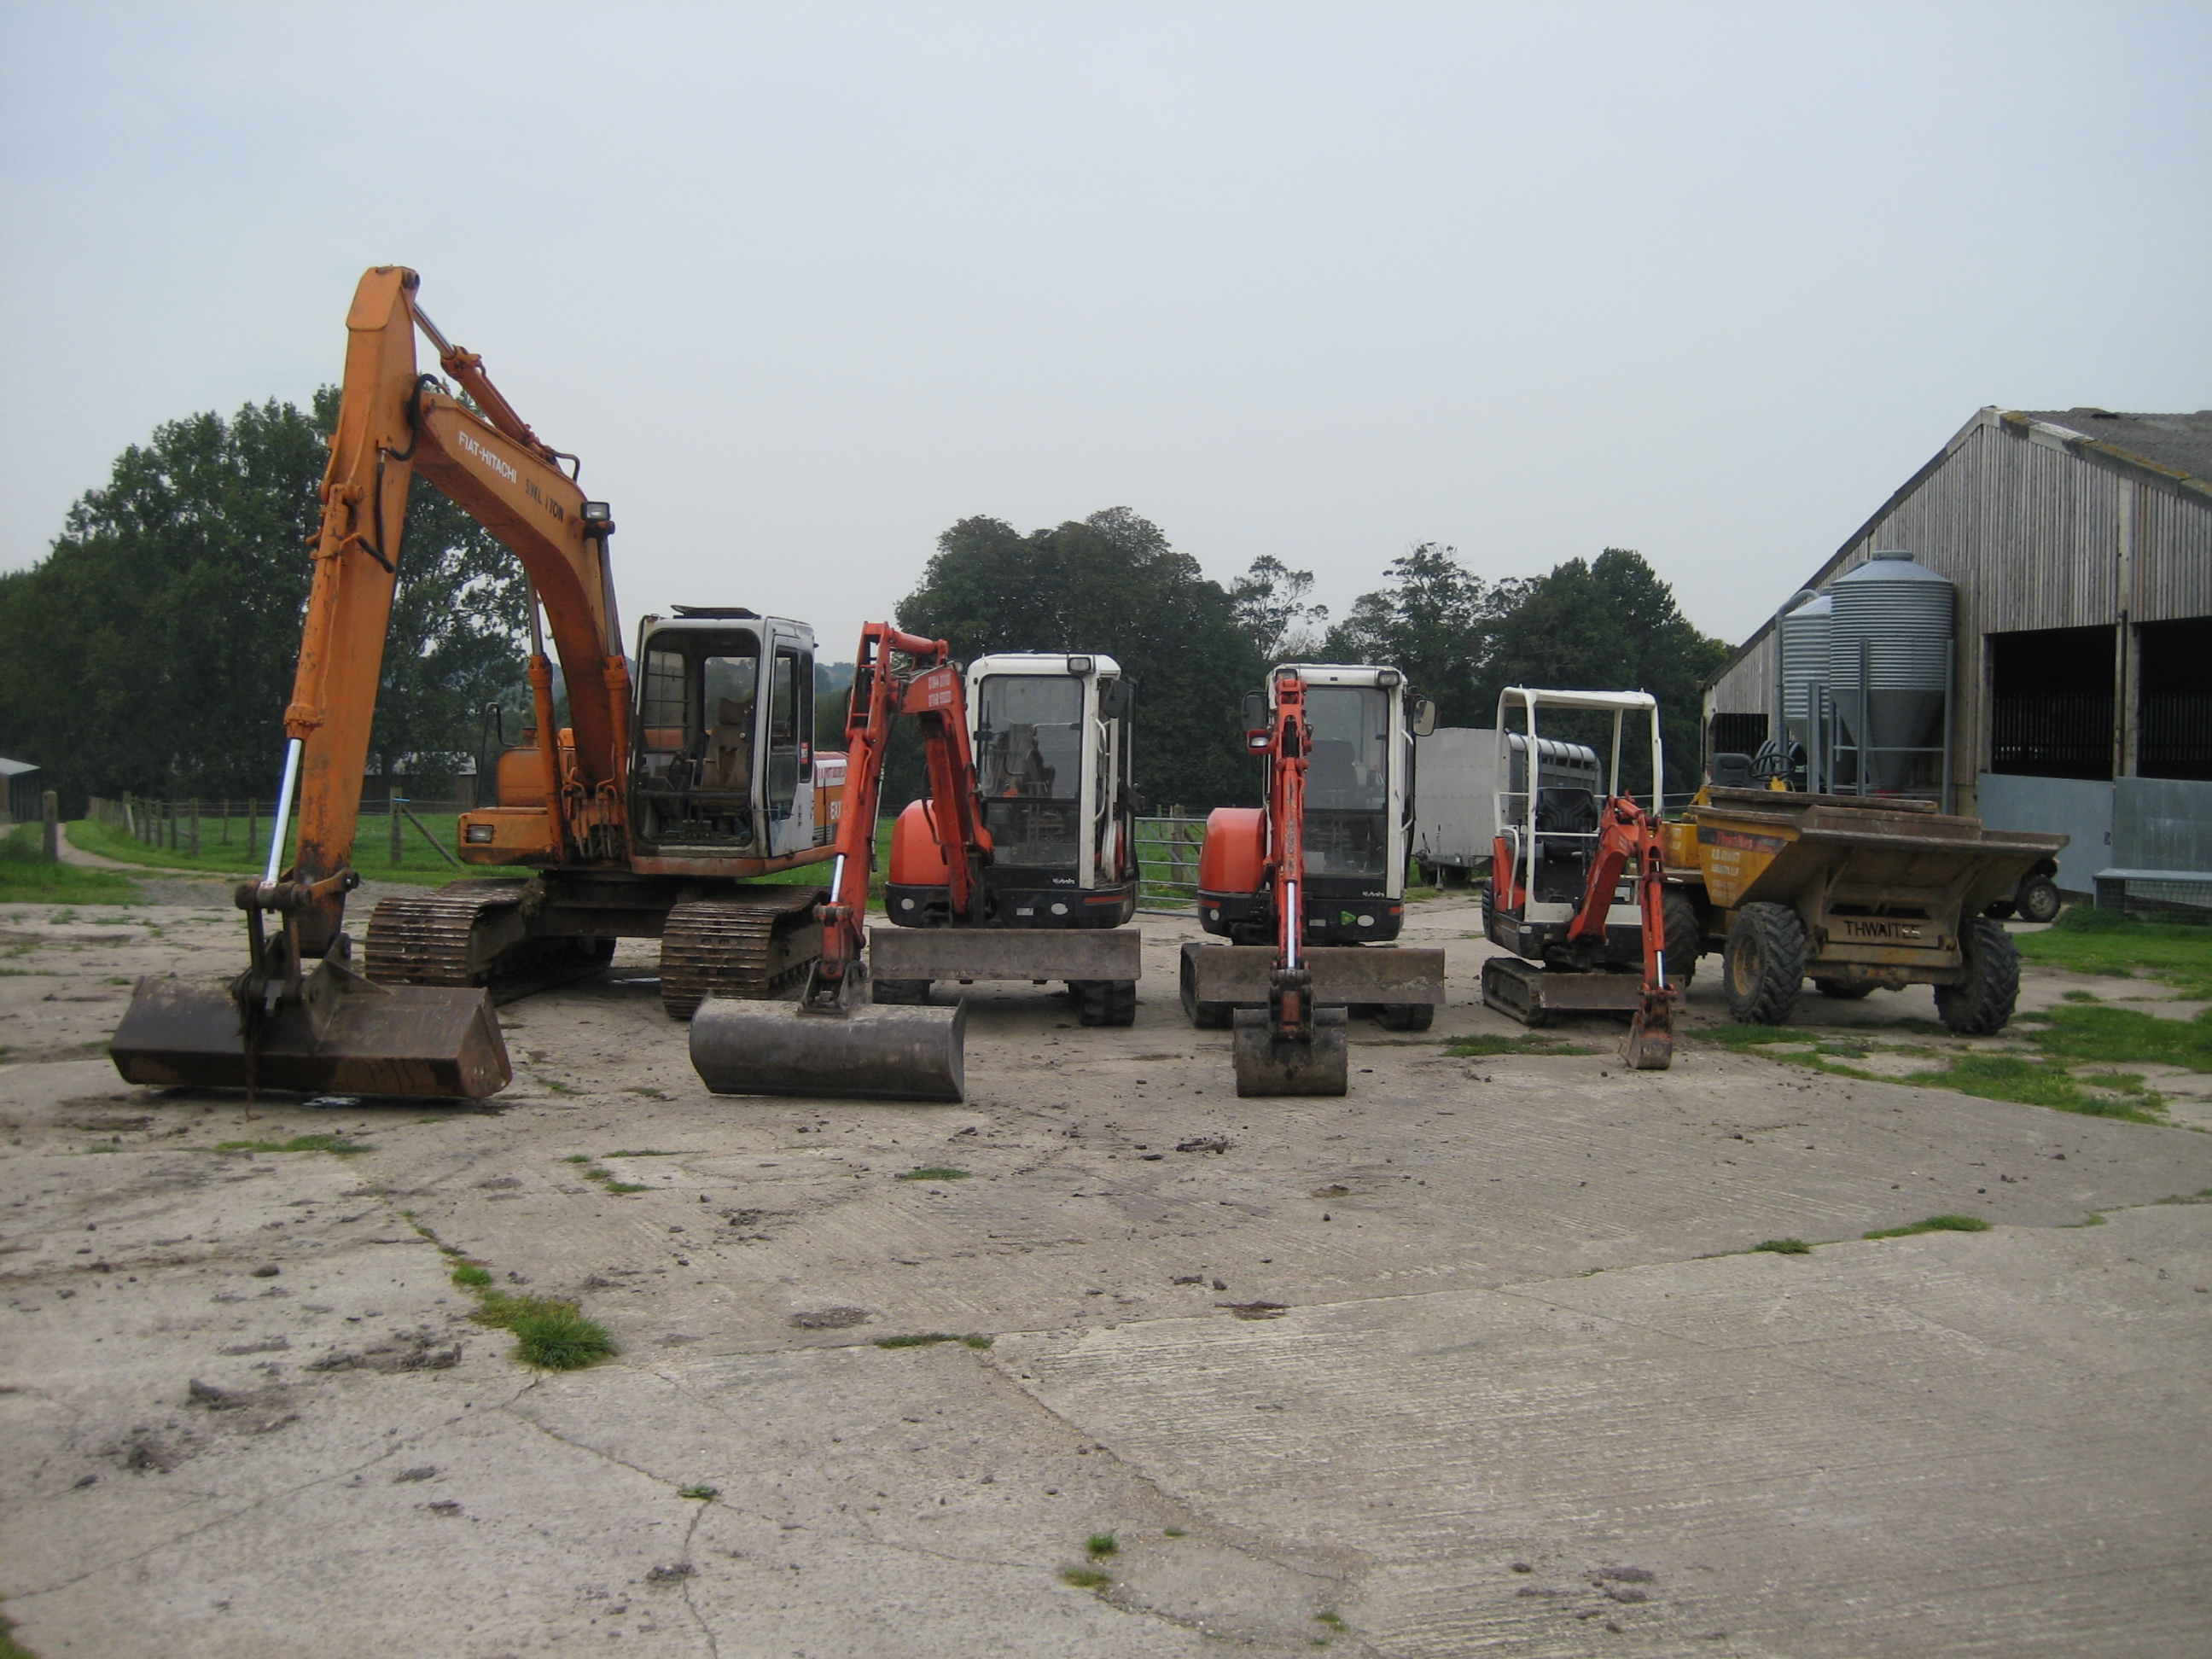 1 to 13 tonne fleet of machines